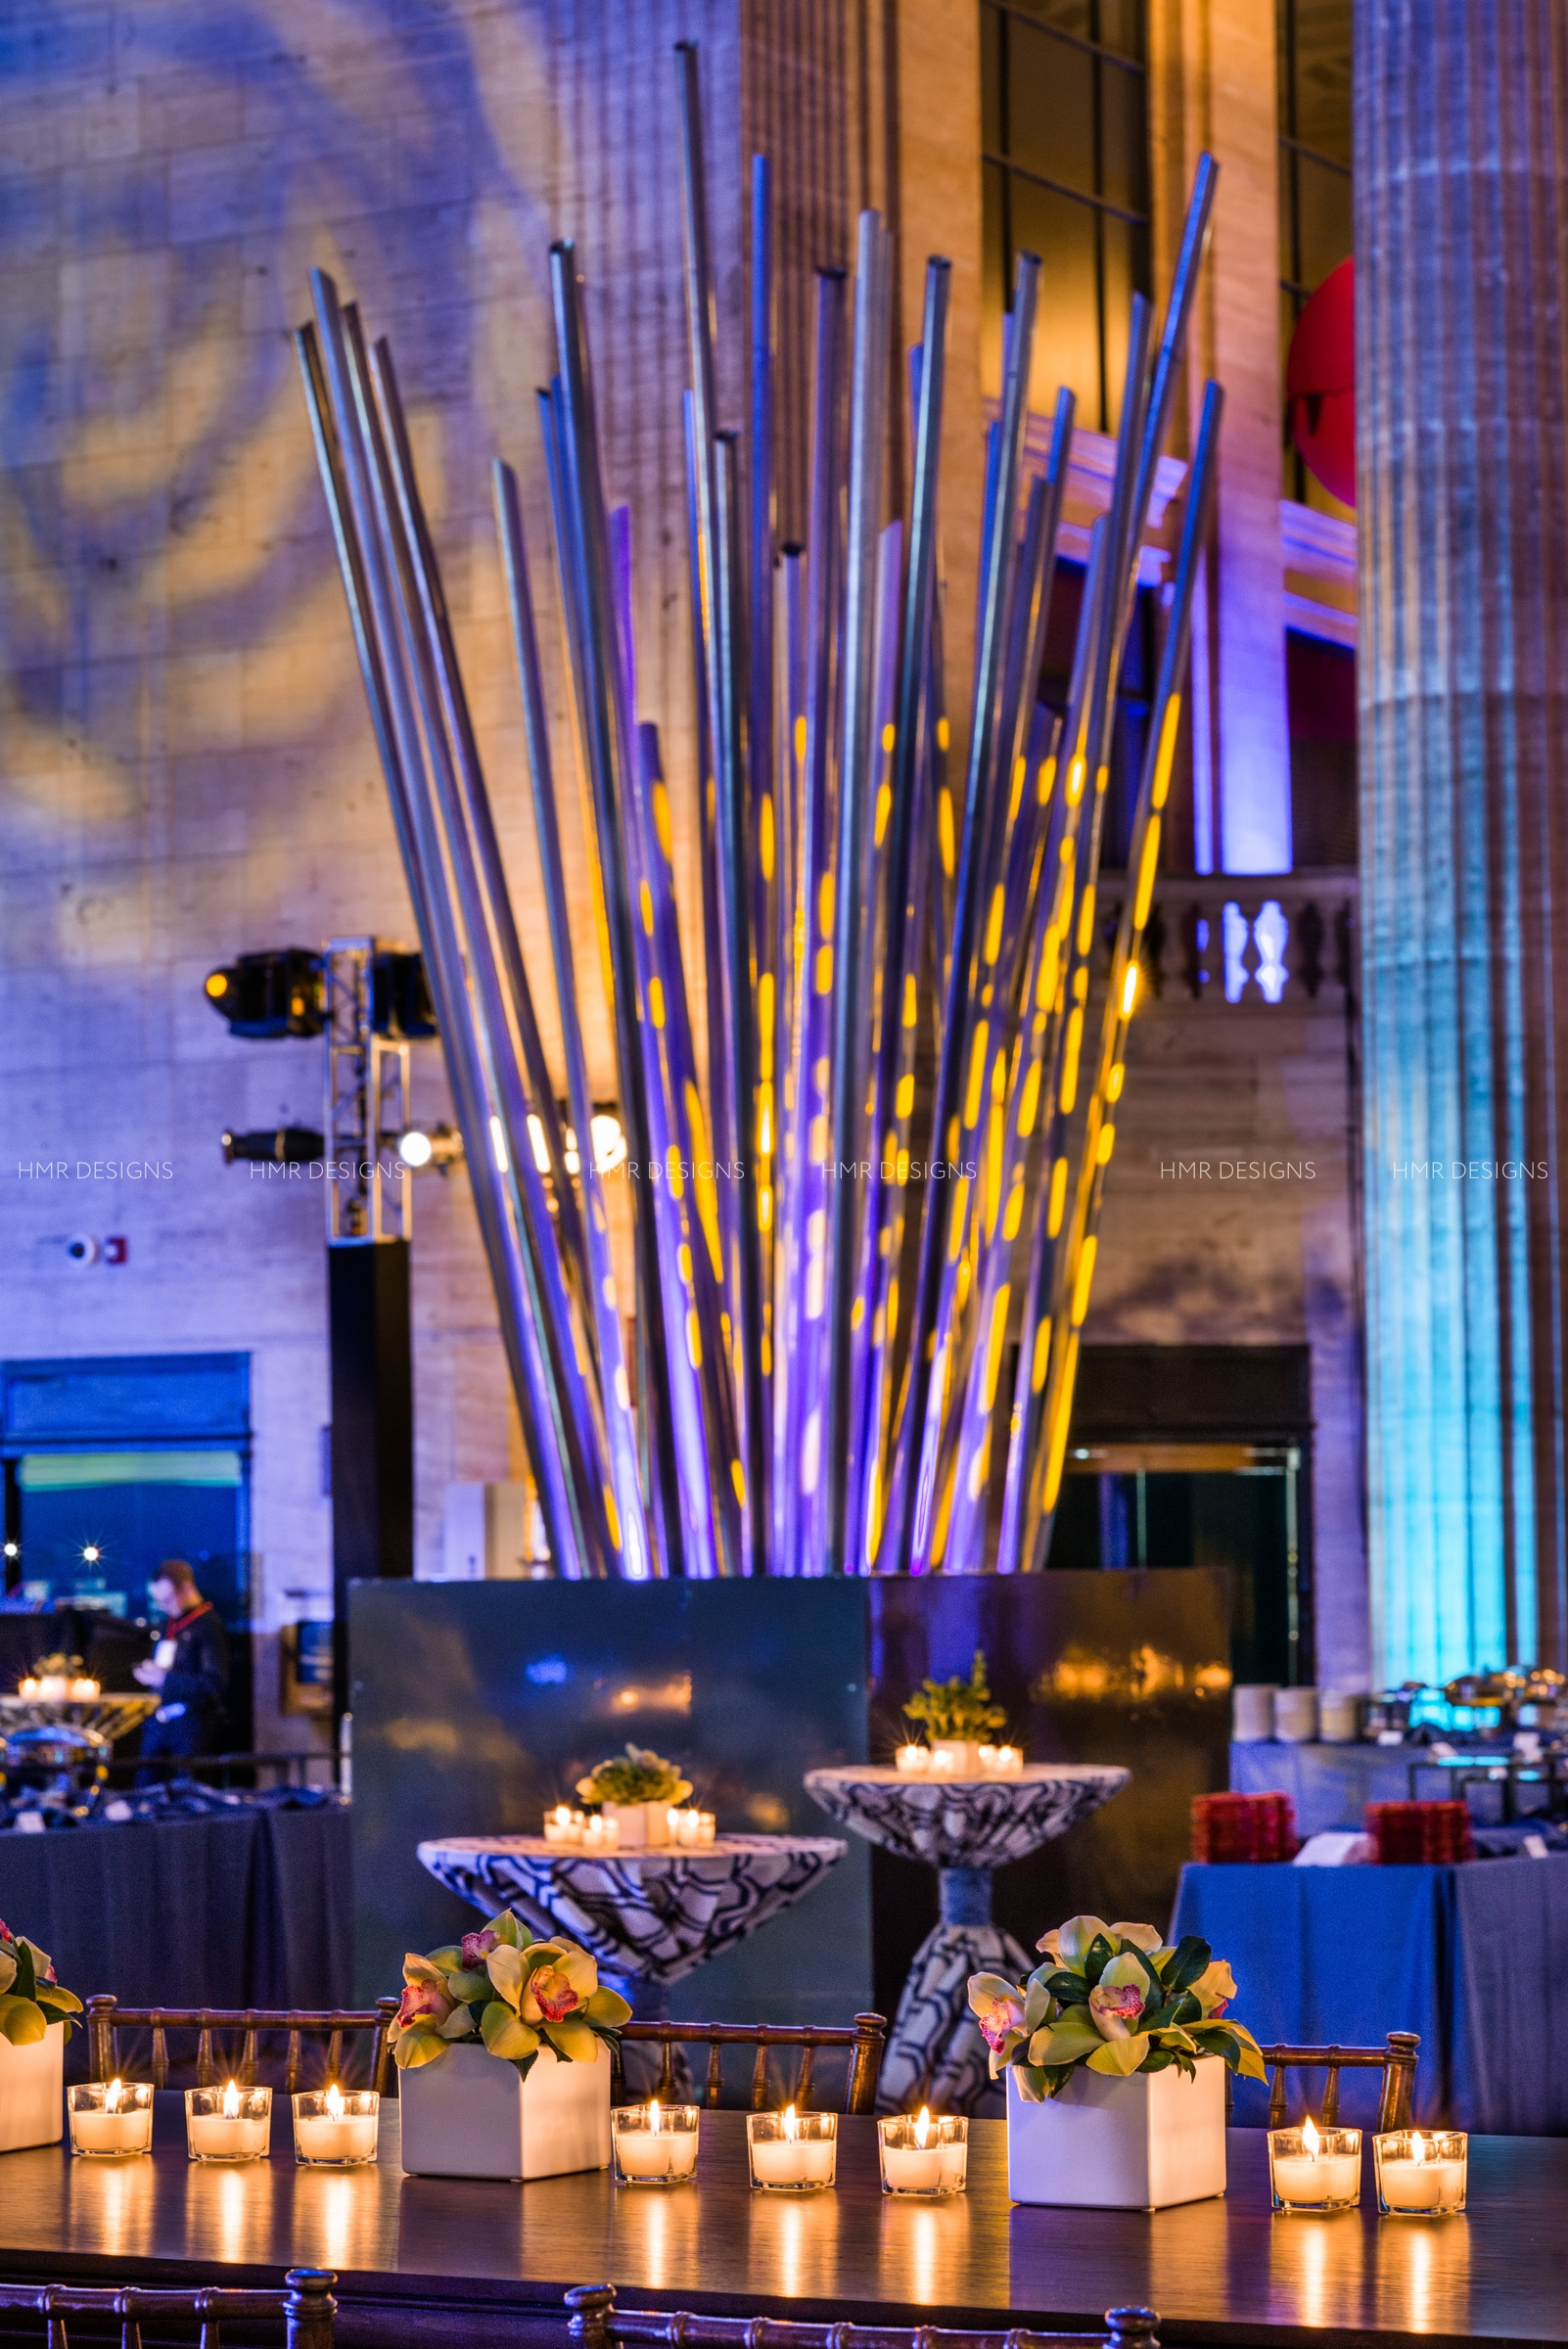 Innovative focals using metal pipes designed by HMR Designs light up Union Station